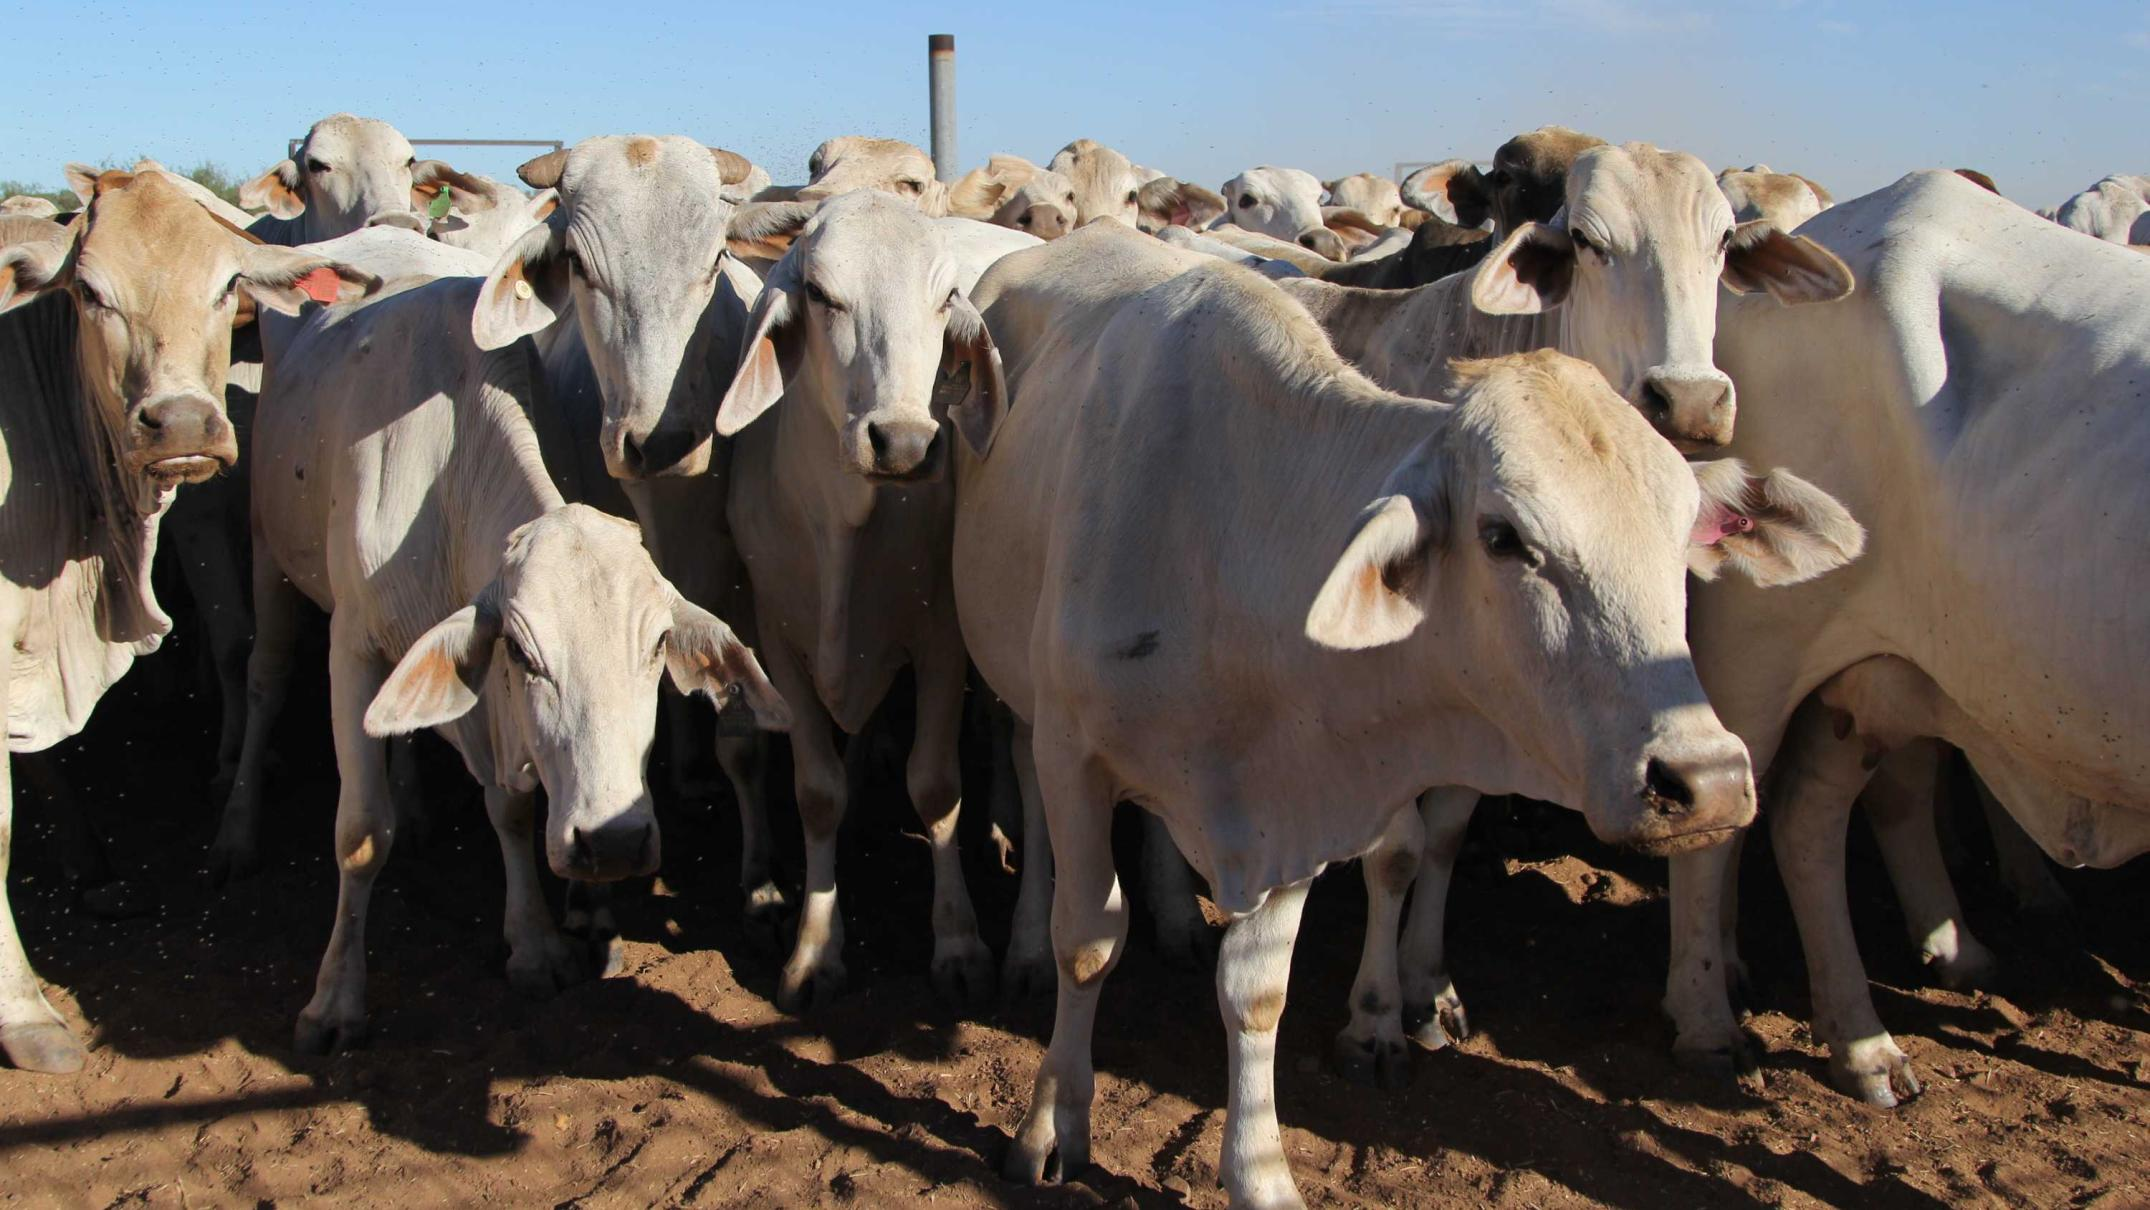 cattle-and-buffalo-shot-with-arrows-and-mutilated-in-spate-of-nt-killings